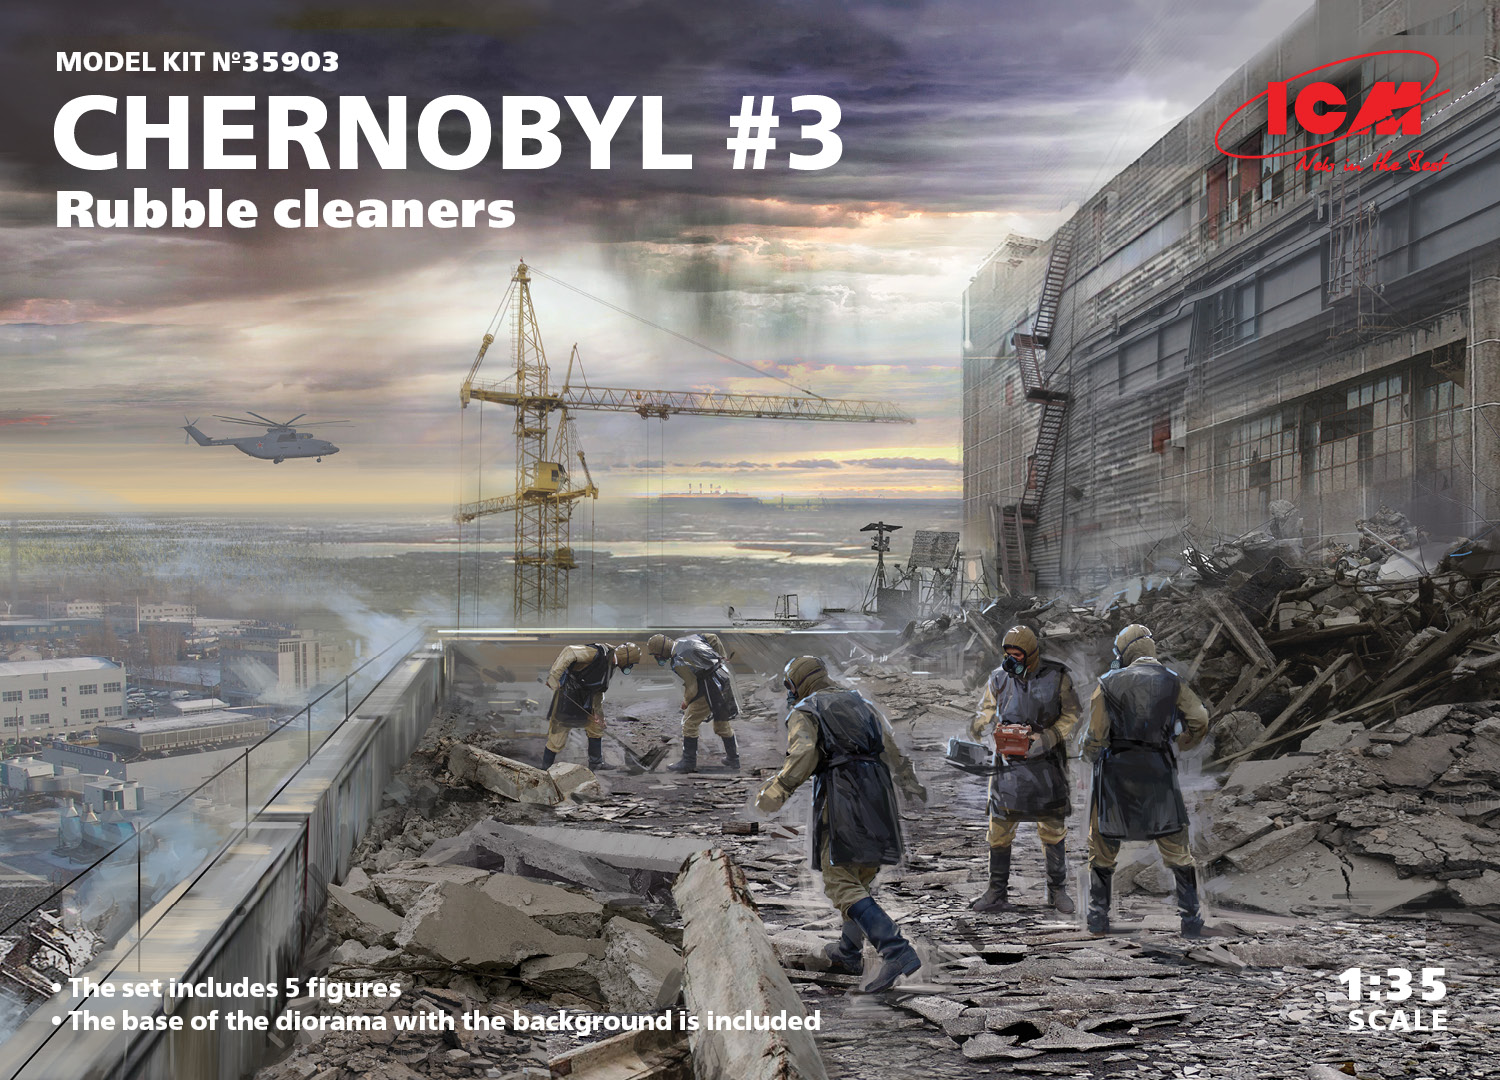 ICM Chernobyl#3. Rubble cleaners (5 figures) 1/35 Scale